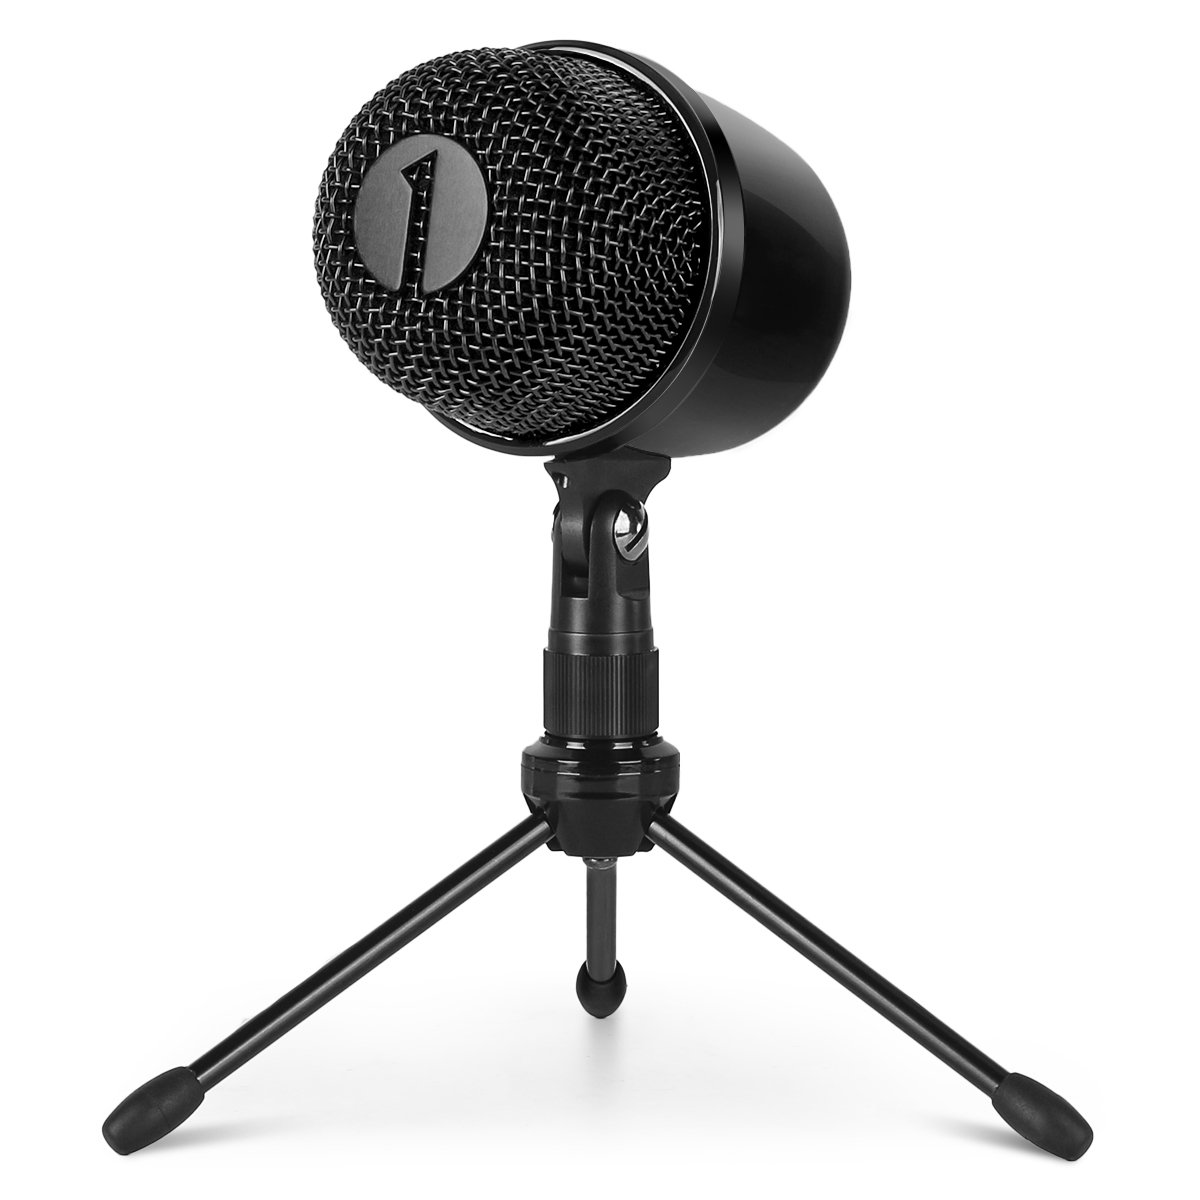 1byone USB Microphone with Tripod, Mute Button with LED, Plug and Play Cardioid Condenser USB Microphone by 1byone